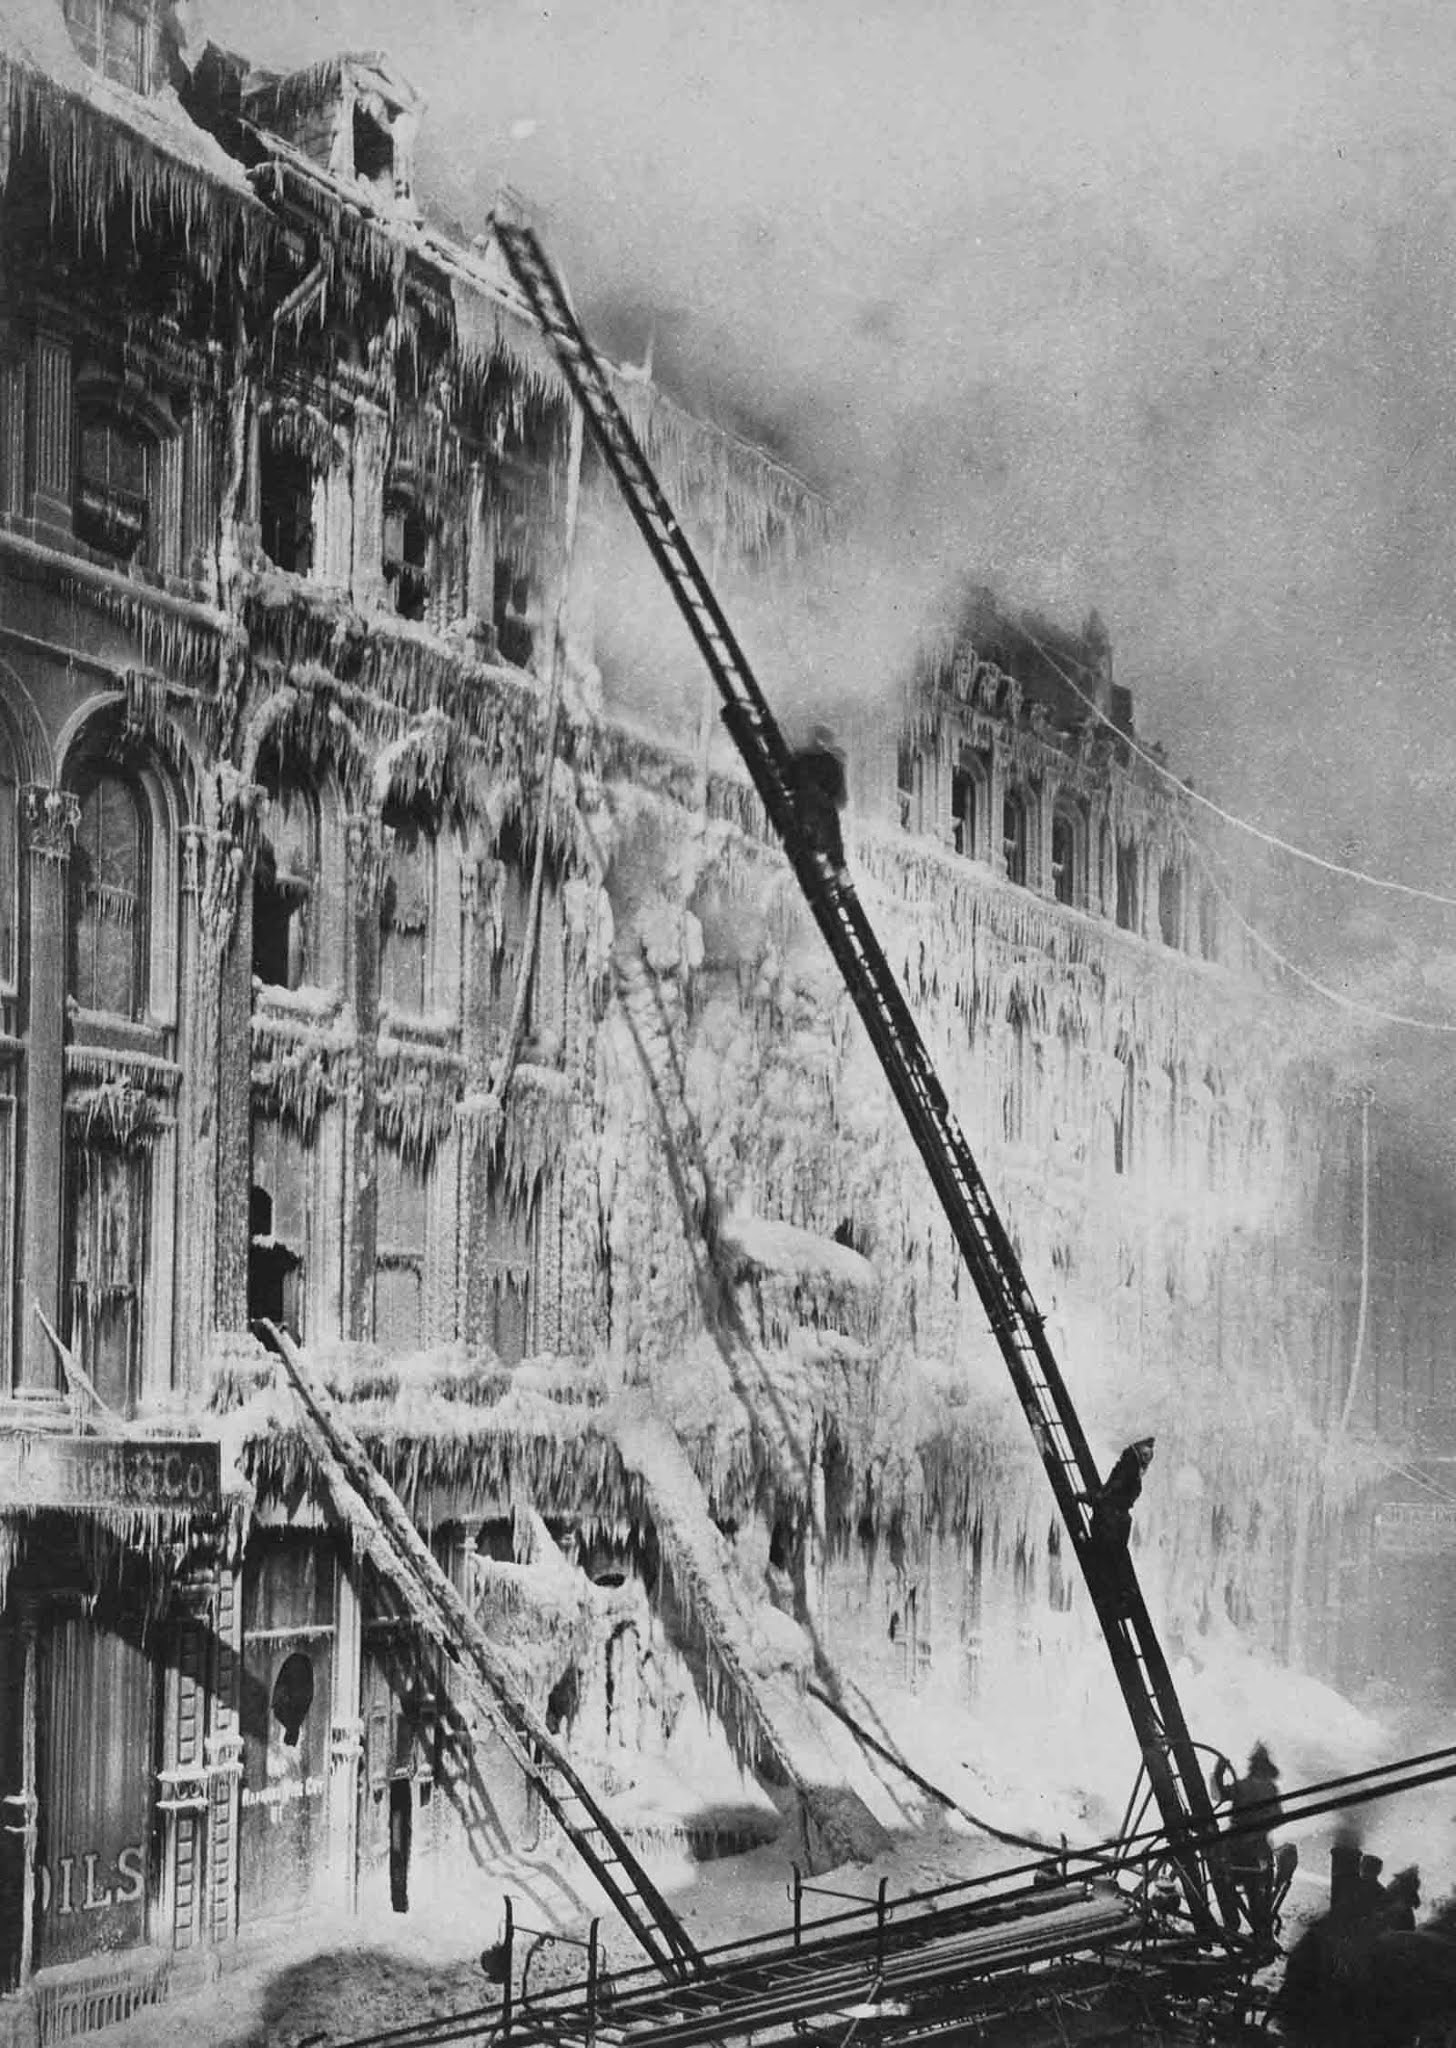 firefighters winter historical photos